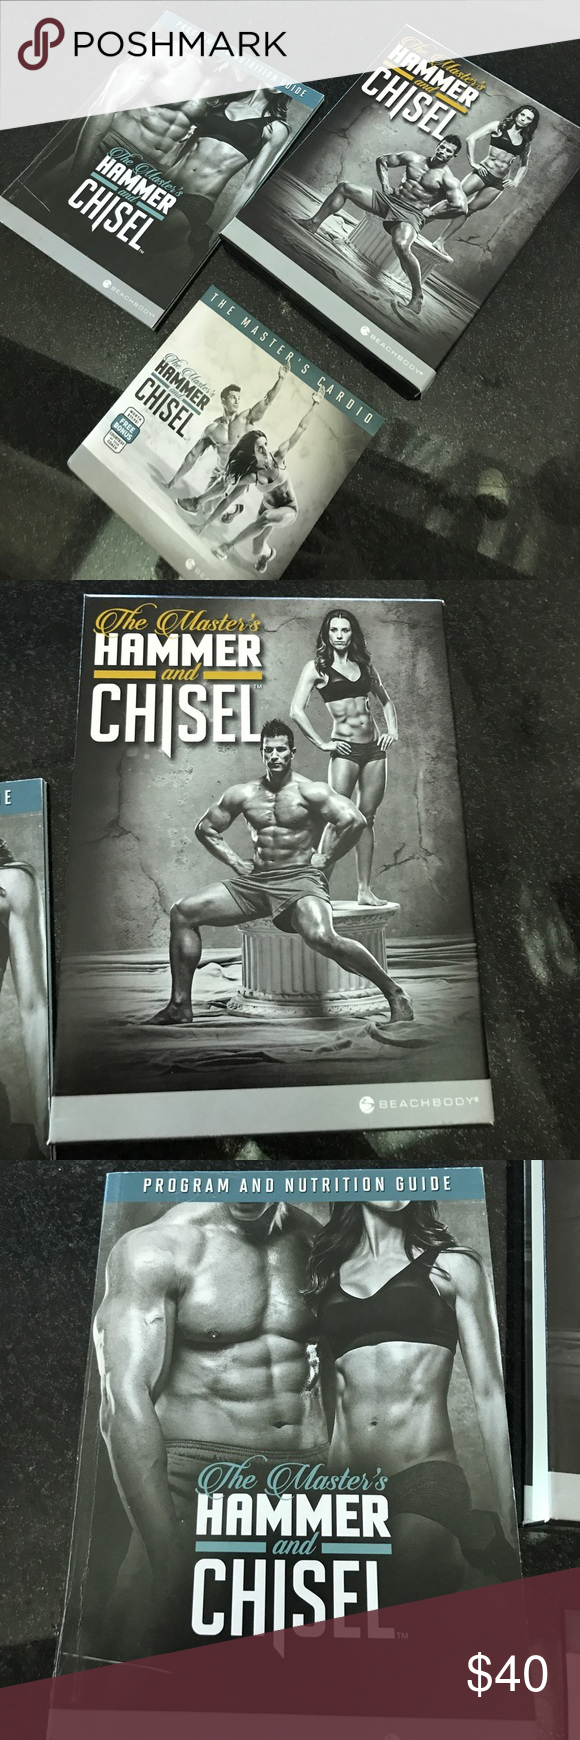 Beachbody Hammer and Chisel Includes entire set of 6 dvds plus bonus disc. Program/nutrition guide. beachbody Accessories